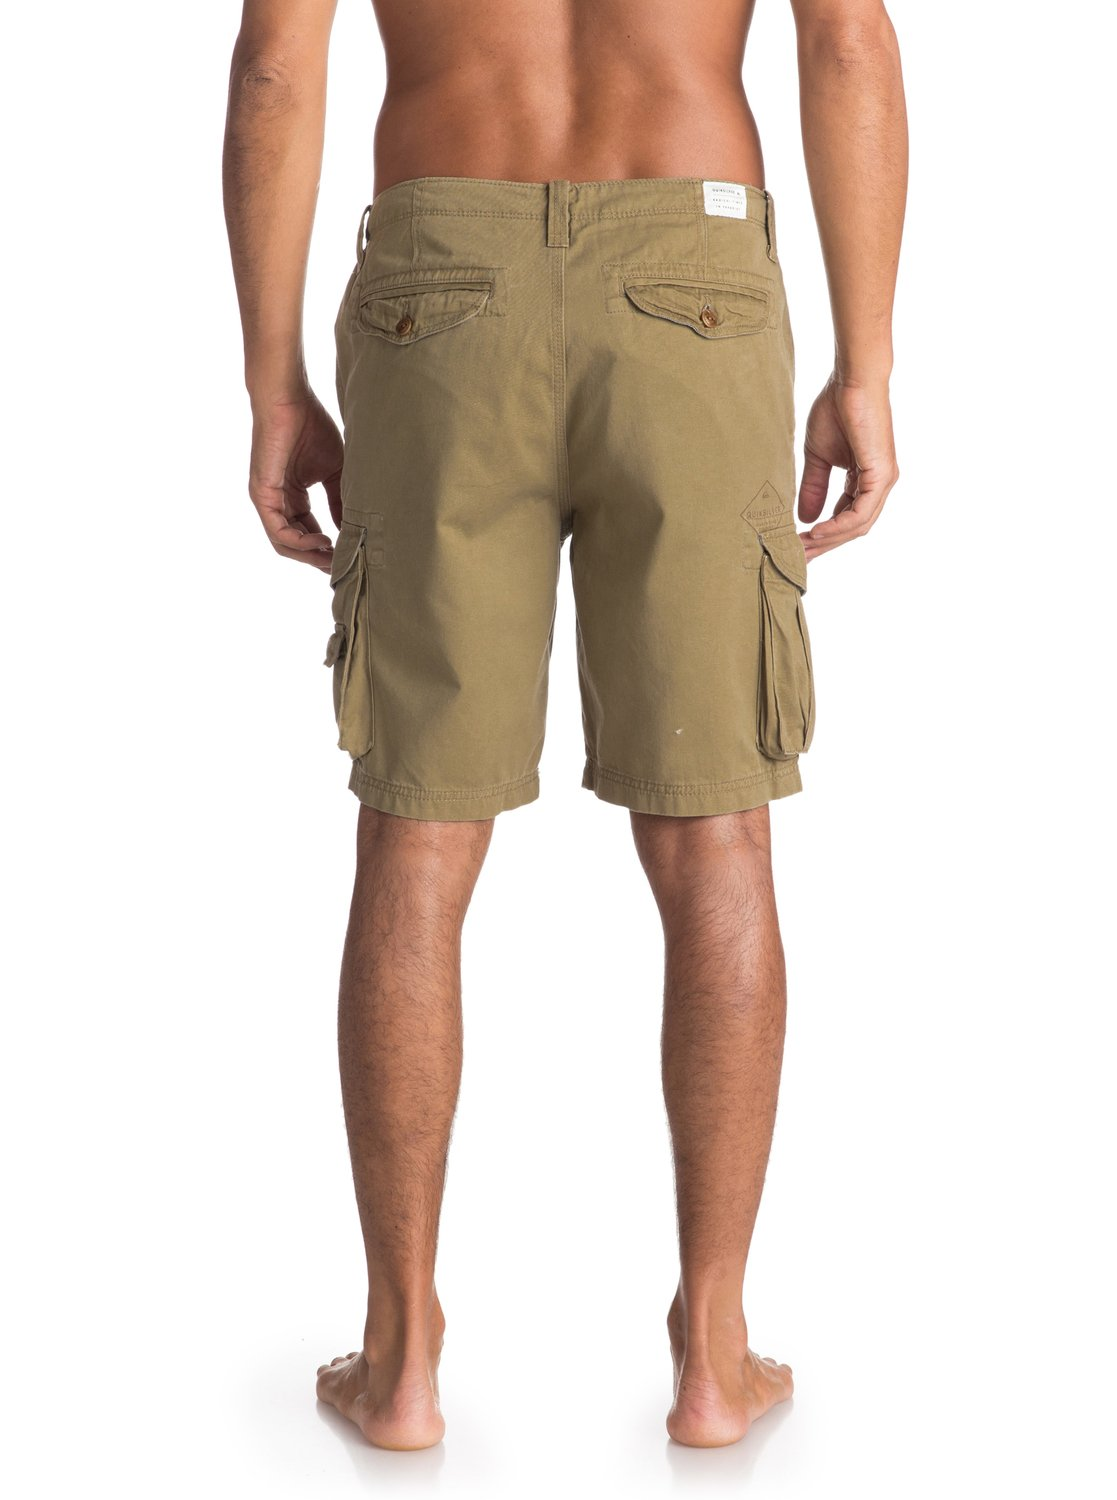 info for lowest price hot-selling real Crucial Battle - Cargo Shorts for Men